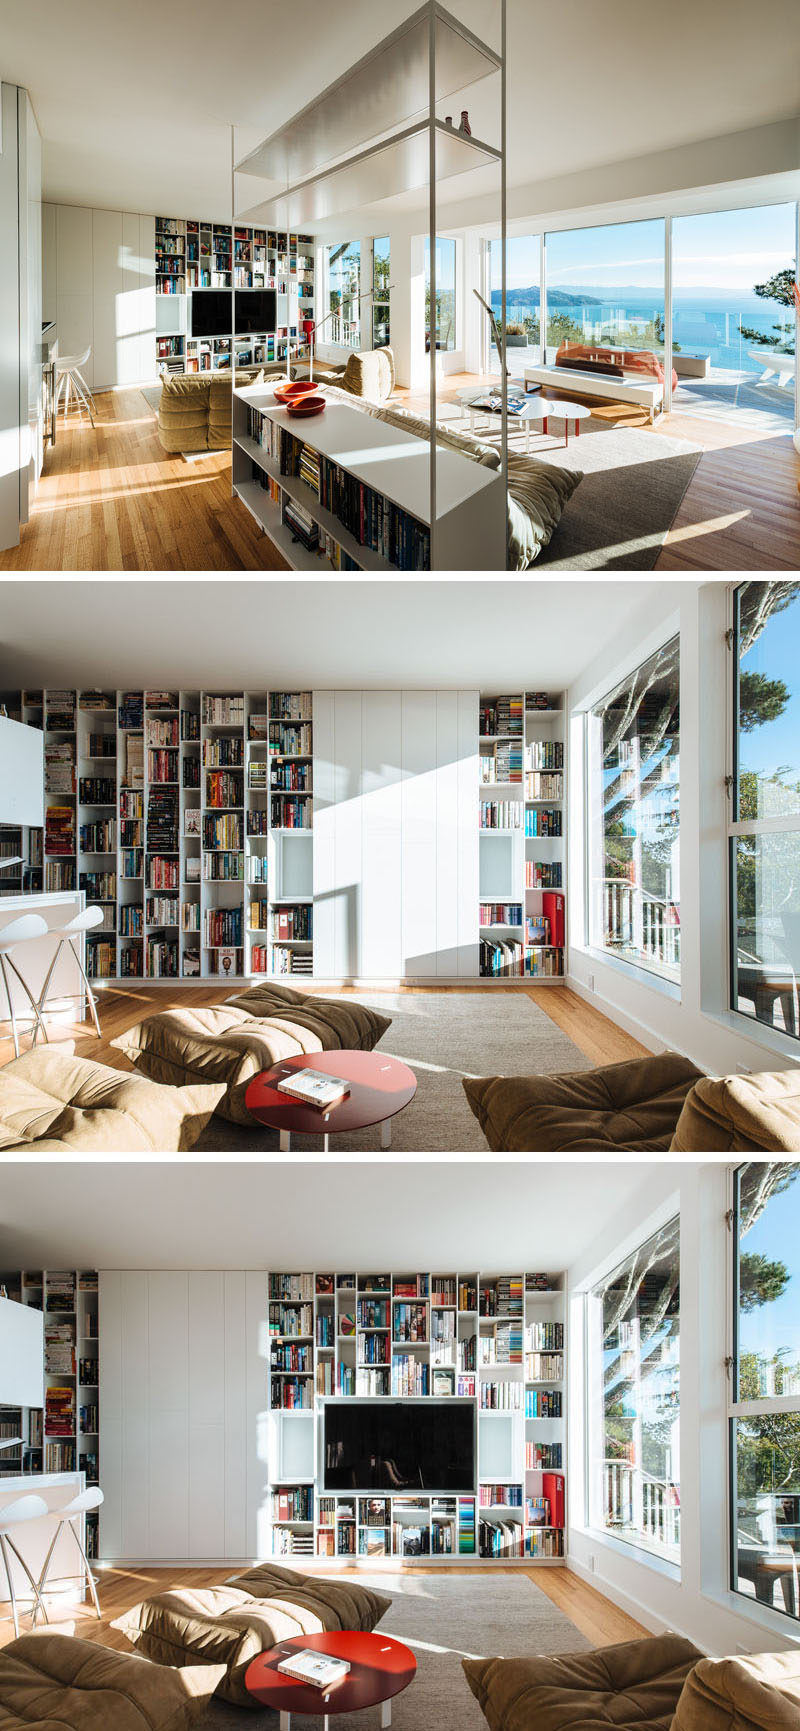 This modern home has a library that's filled with shelving and an open floor plan that takes advantage of the view. On one wall, floor-to-ceiling shelving has been added and the television when not in use, is hidden behind sliding white panels. #Shelving #HideTV #LivingRoom #Library